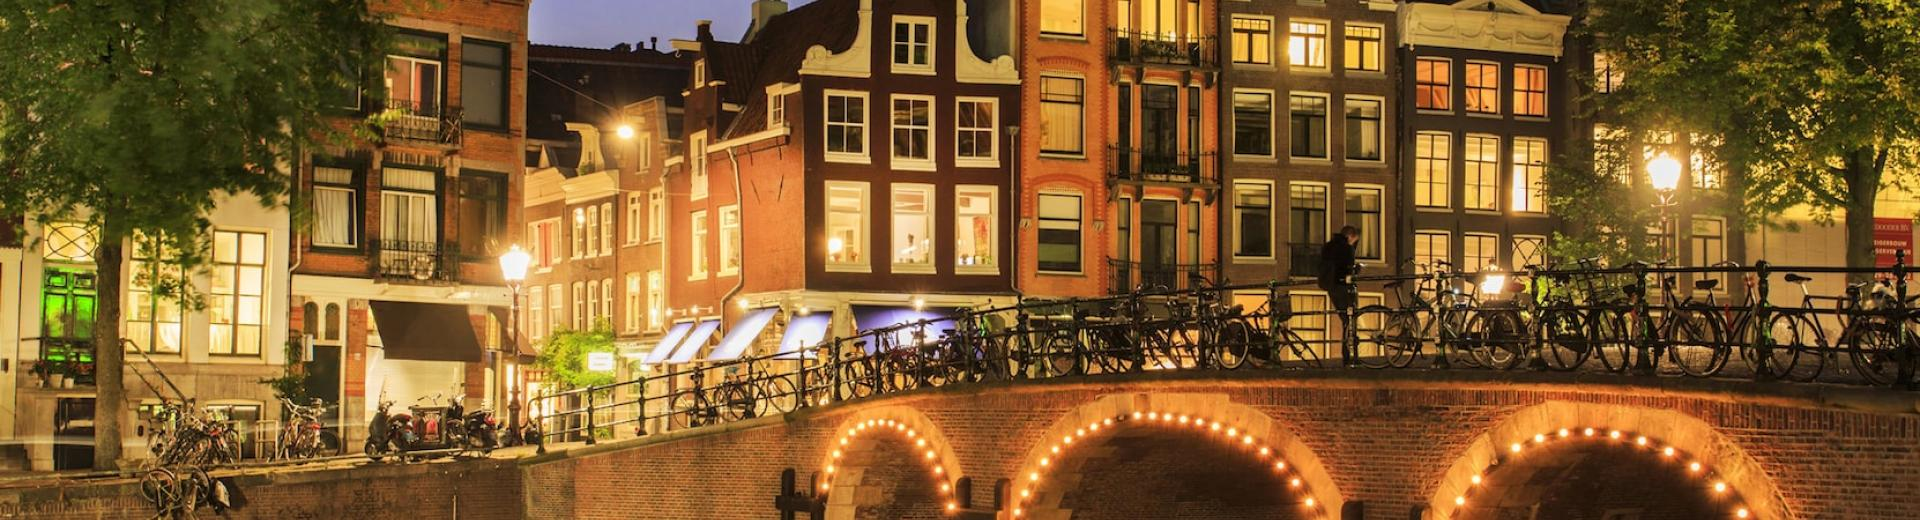 Amsterdam really comes to life at night.